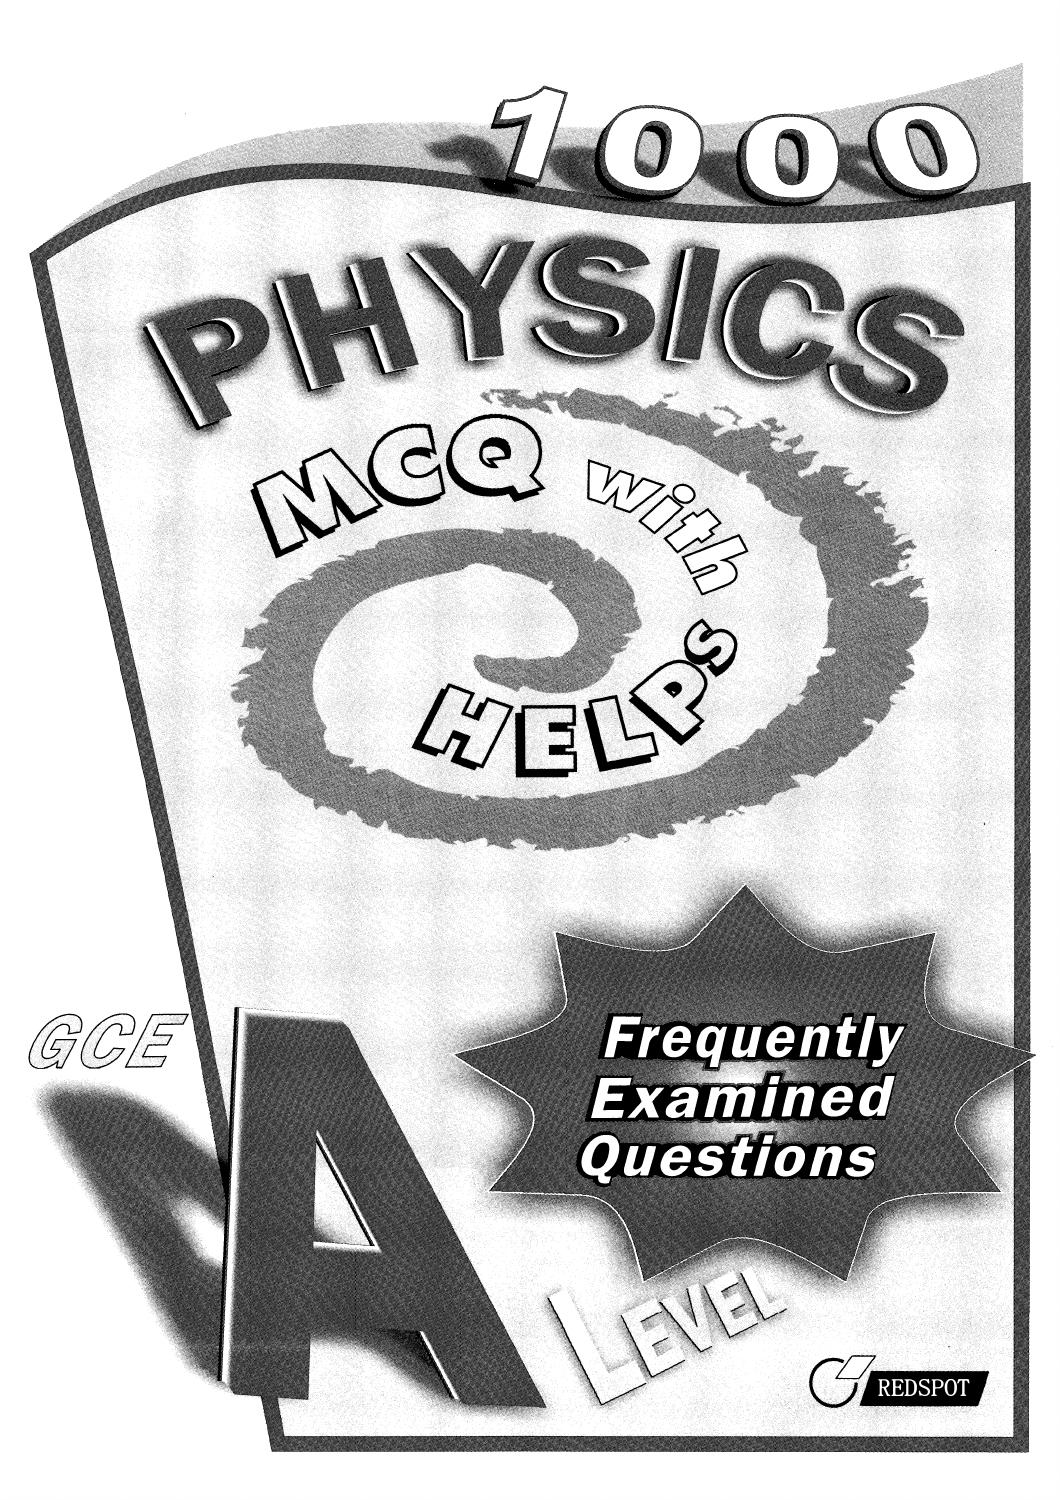 Preview 1000 mcq physics for a level by tusachduhoc - issuu